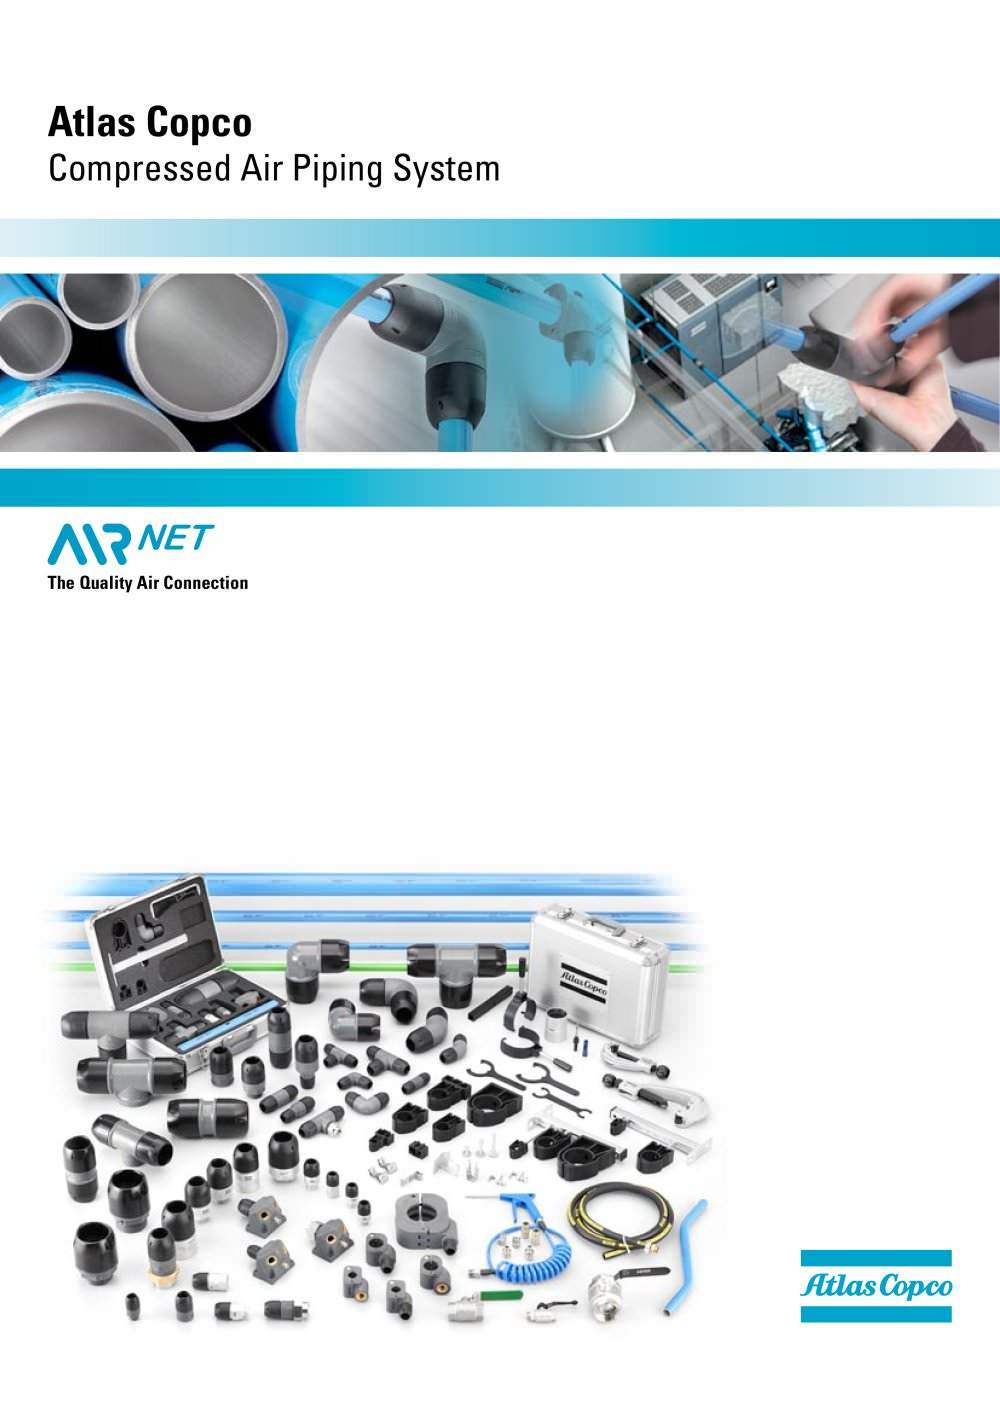 Atlas Copco Compressed Air Piping System Compressors Layout Compressor 1 7 Pages